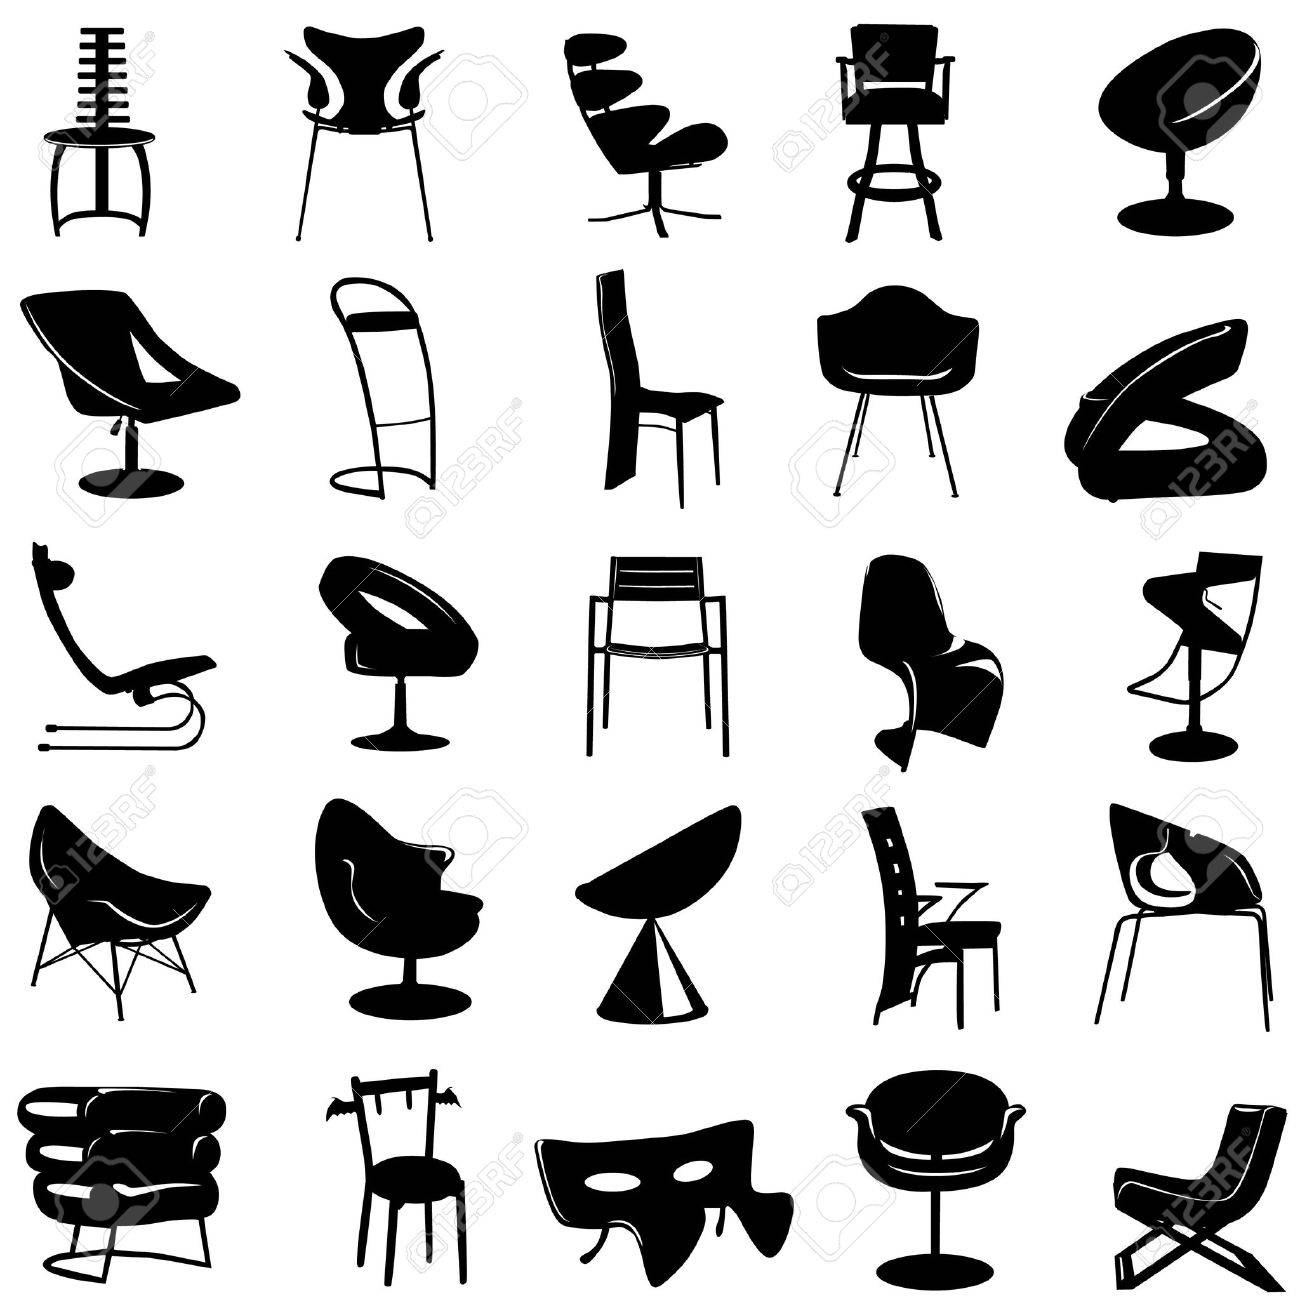 modern chair vector Stock Vector - 9345582